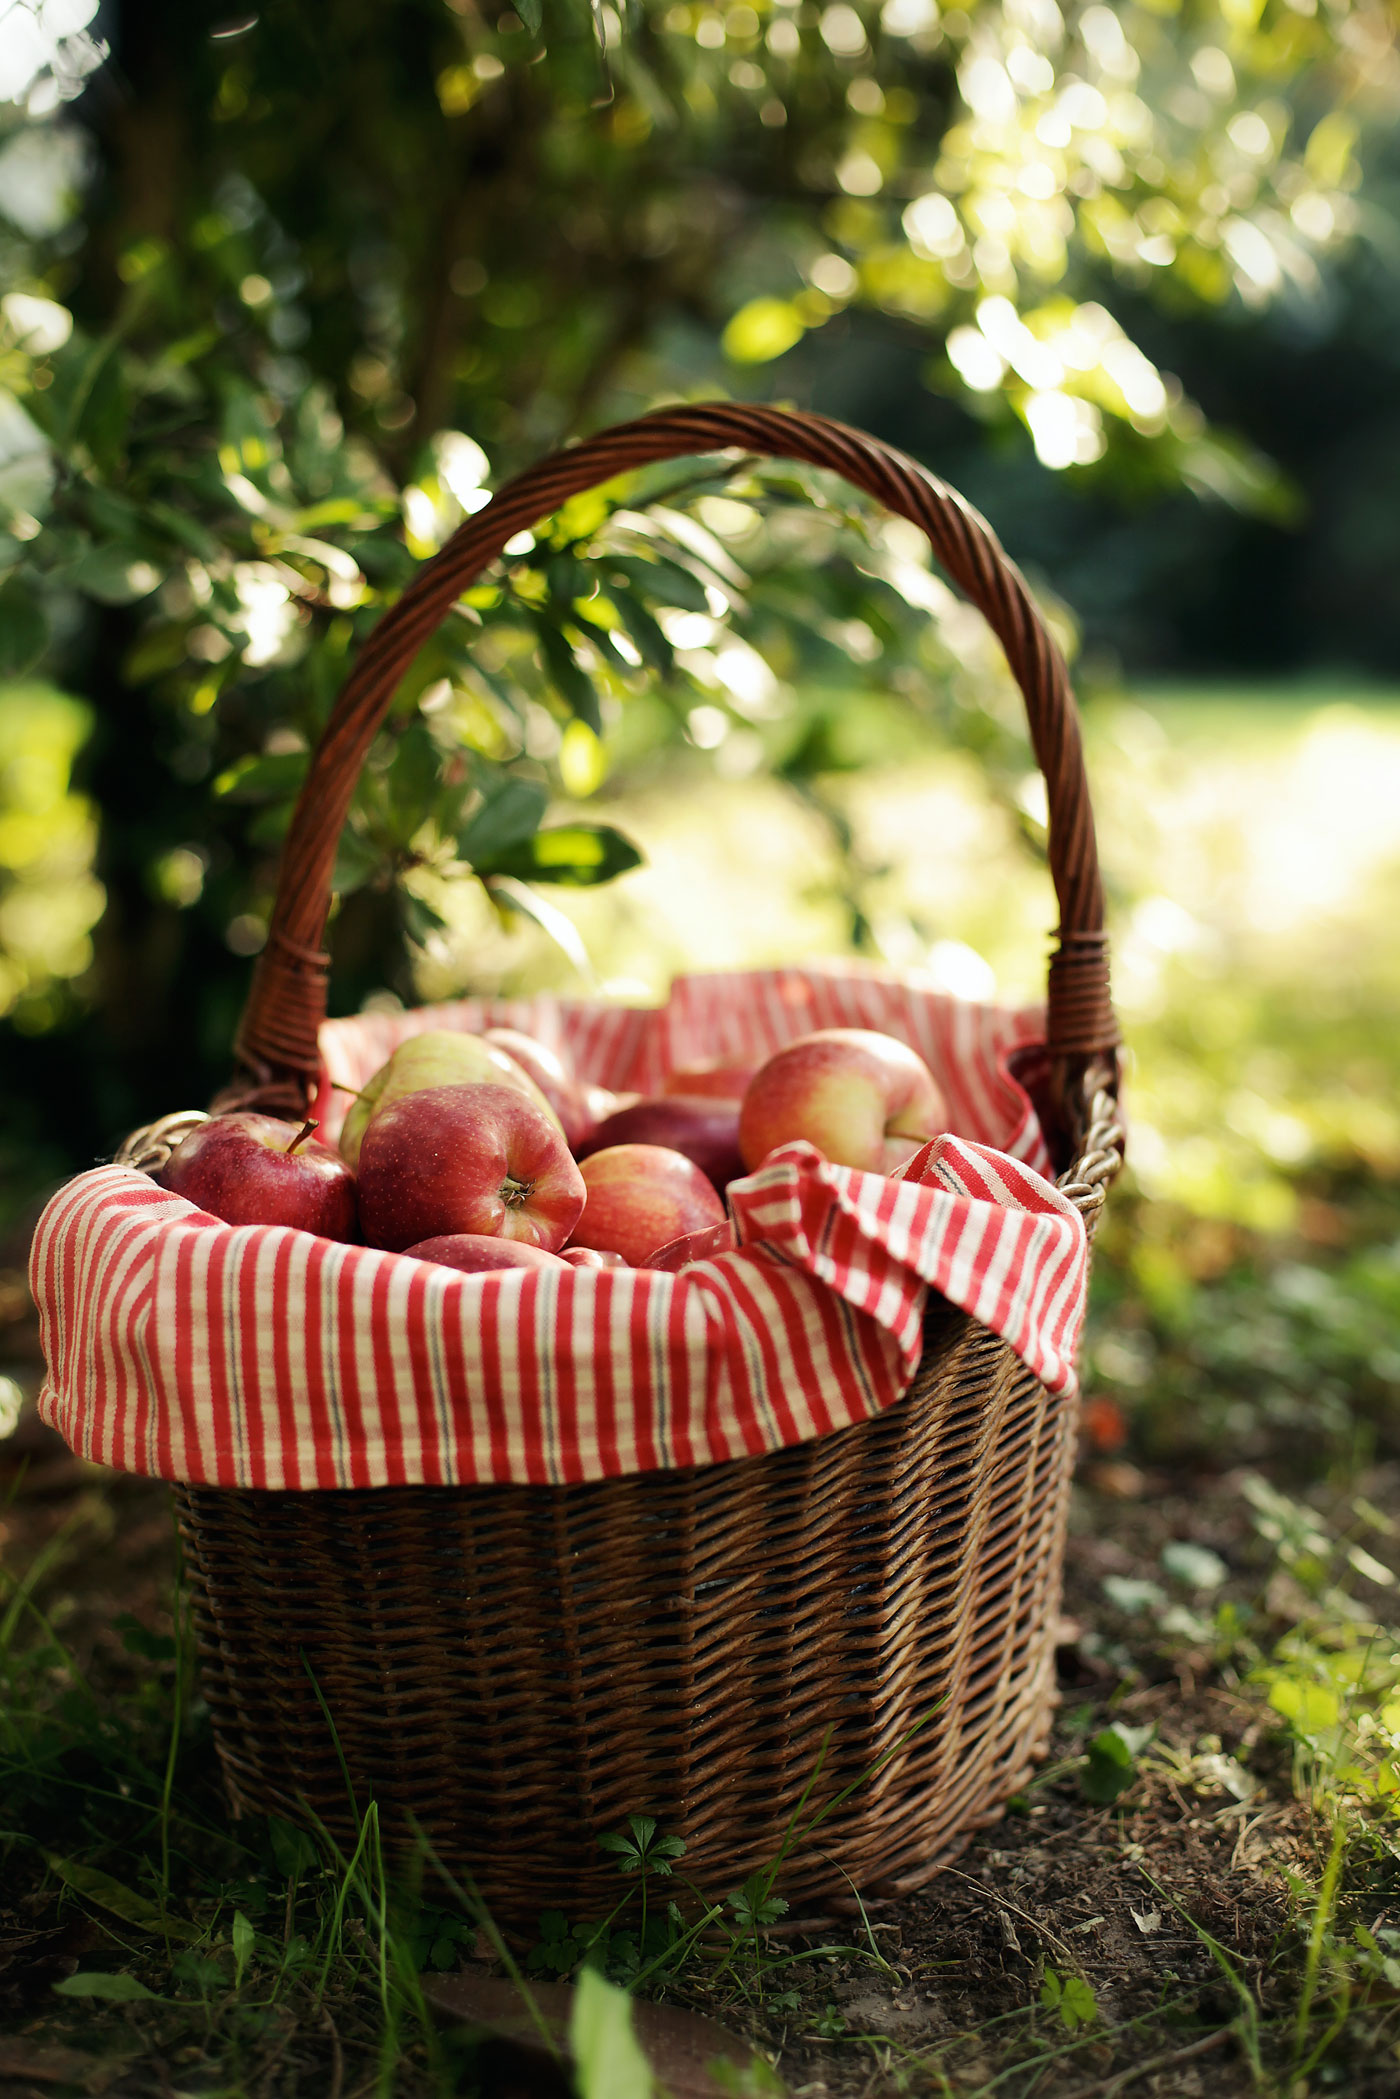 Best Apple Picking Places Near Me